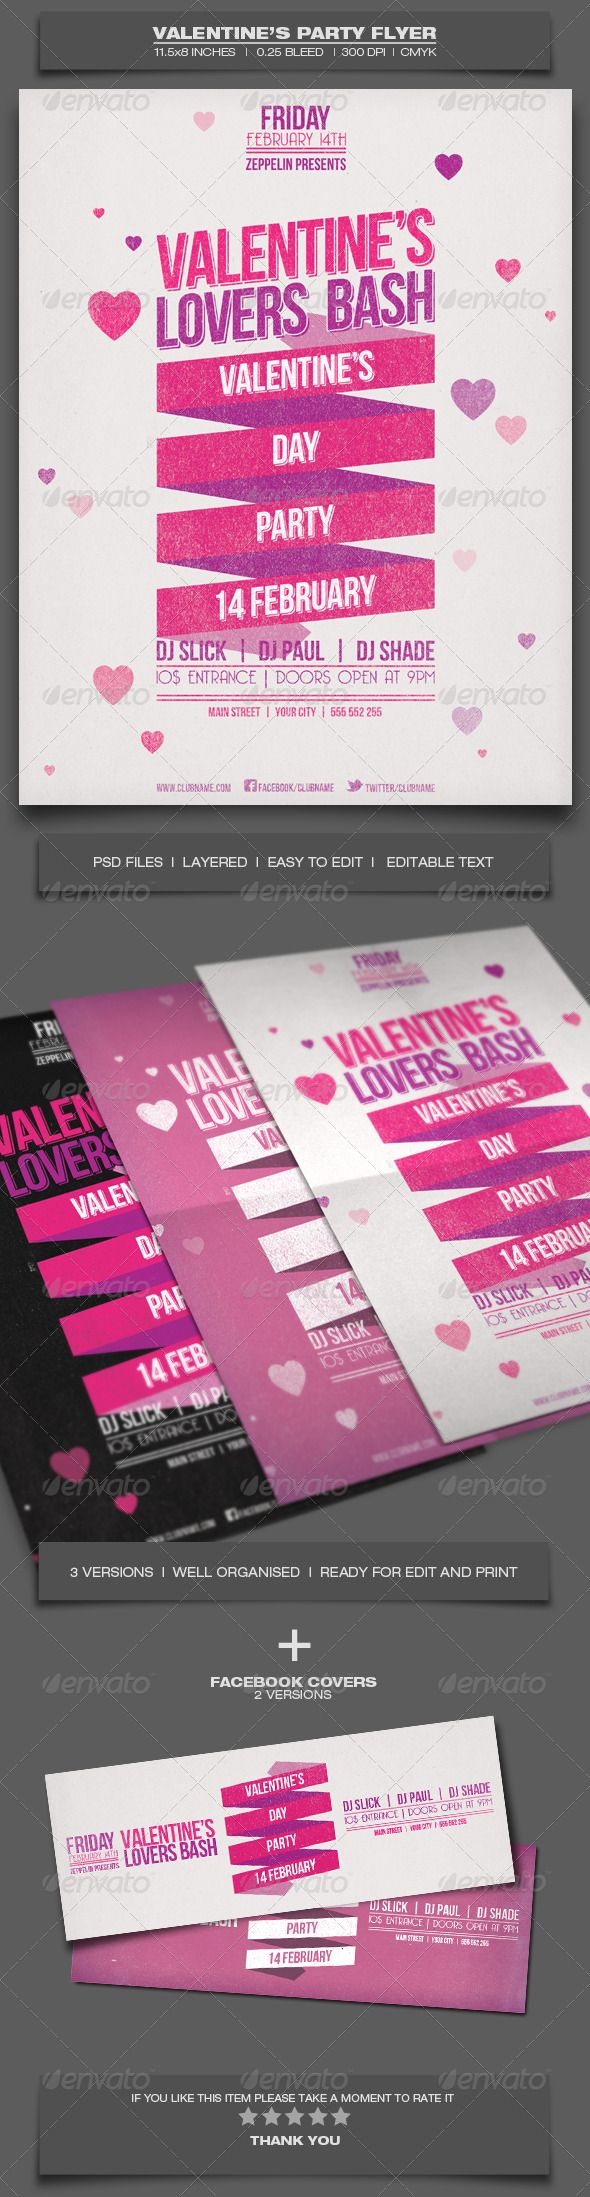 Valentine's Day Party - Event Flyer Template 2 #GraphicRiver